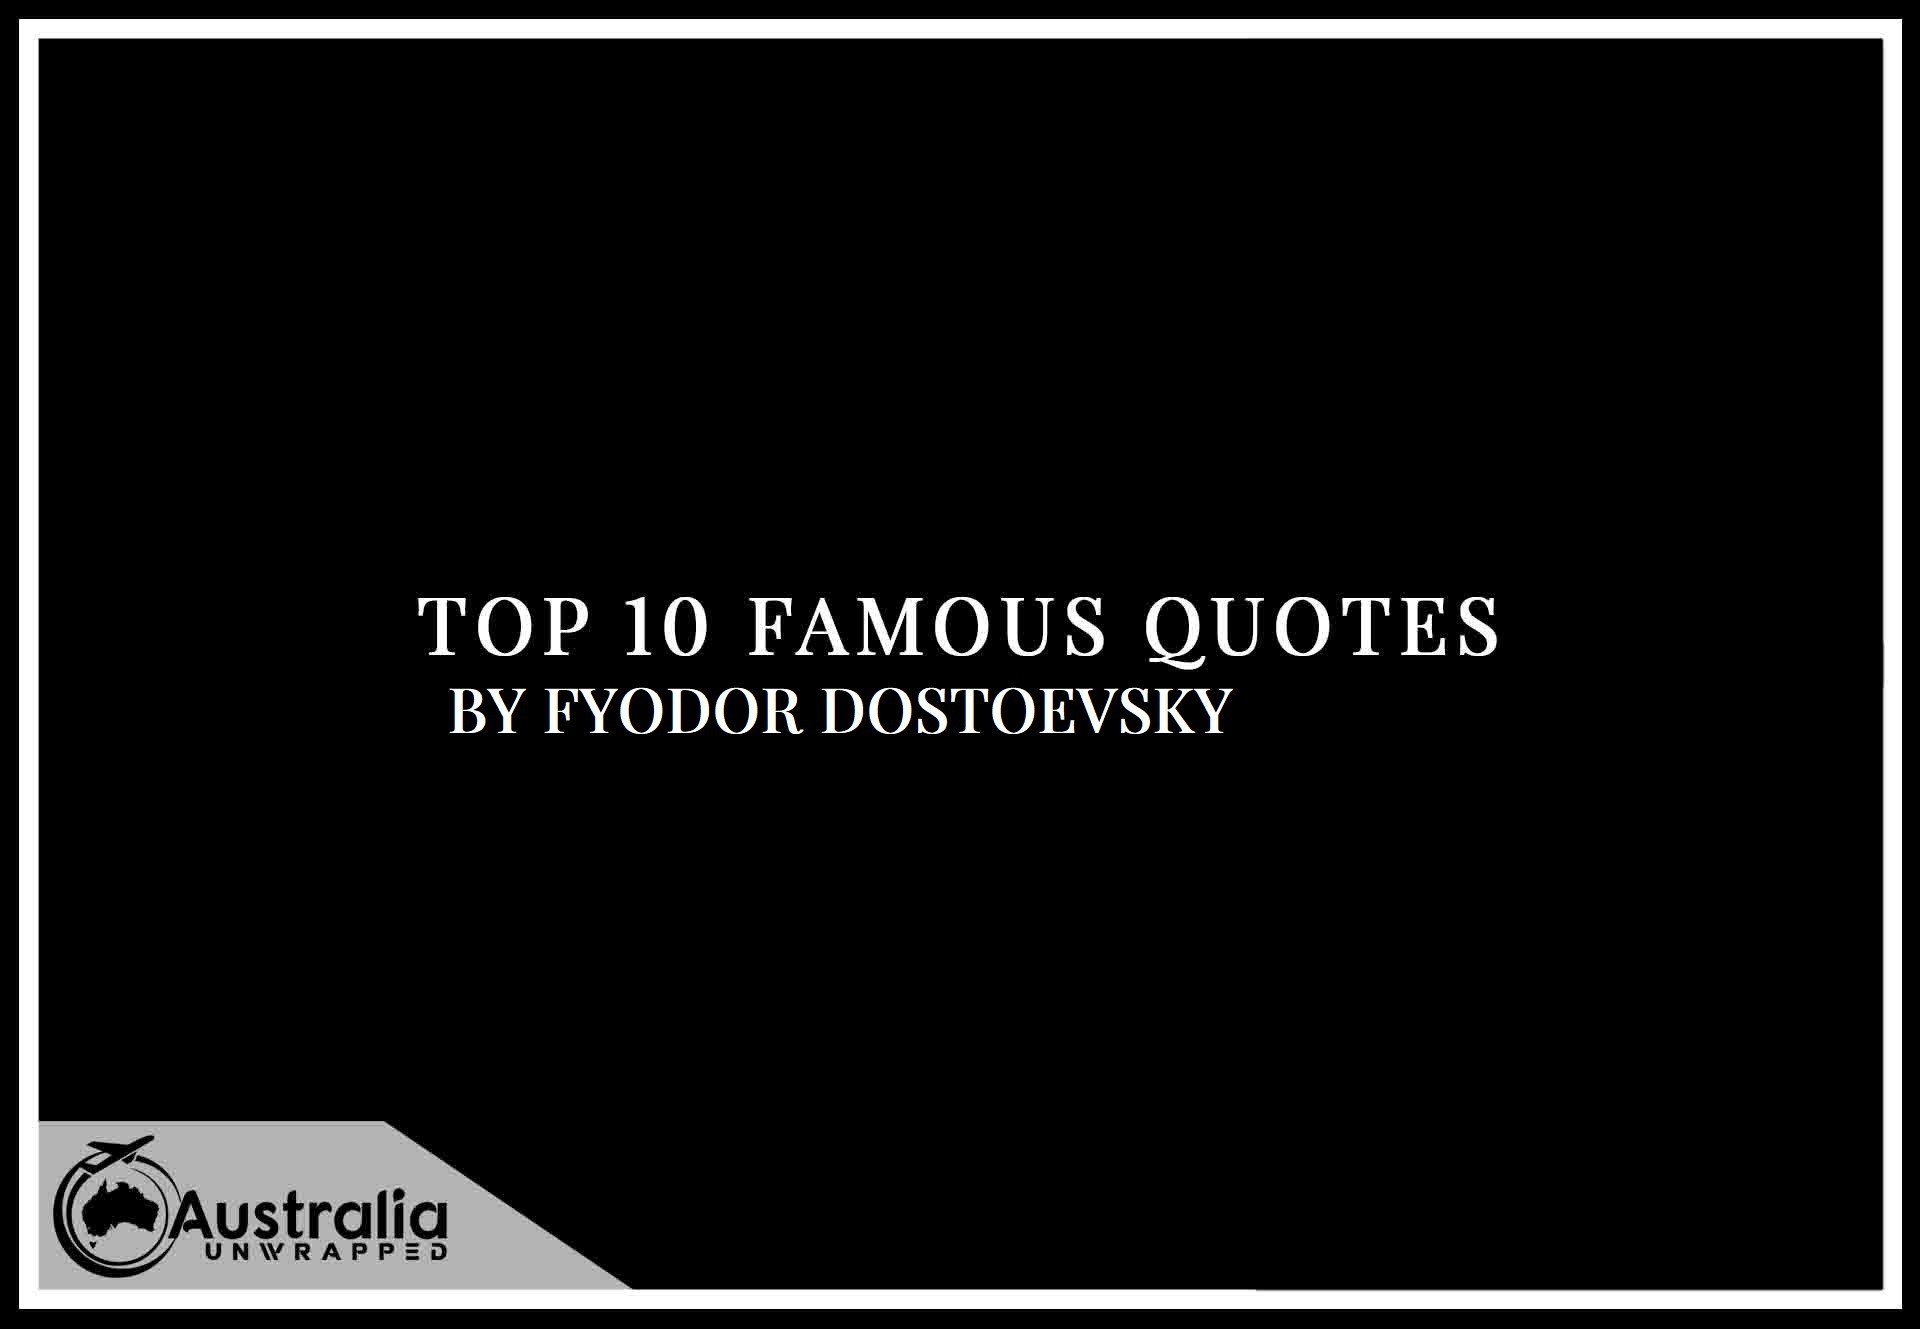 Top 10 Famous Quotes by Author Fyodor Dostoevsky